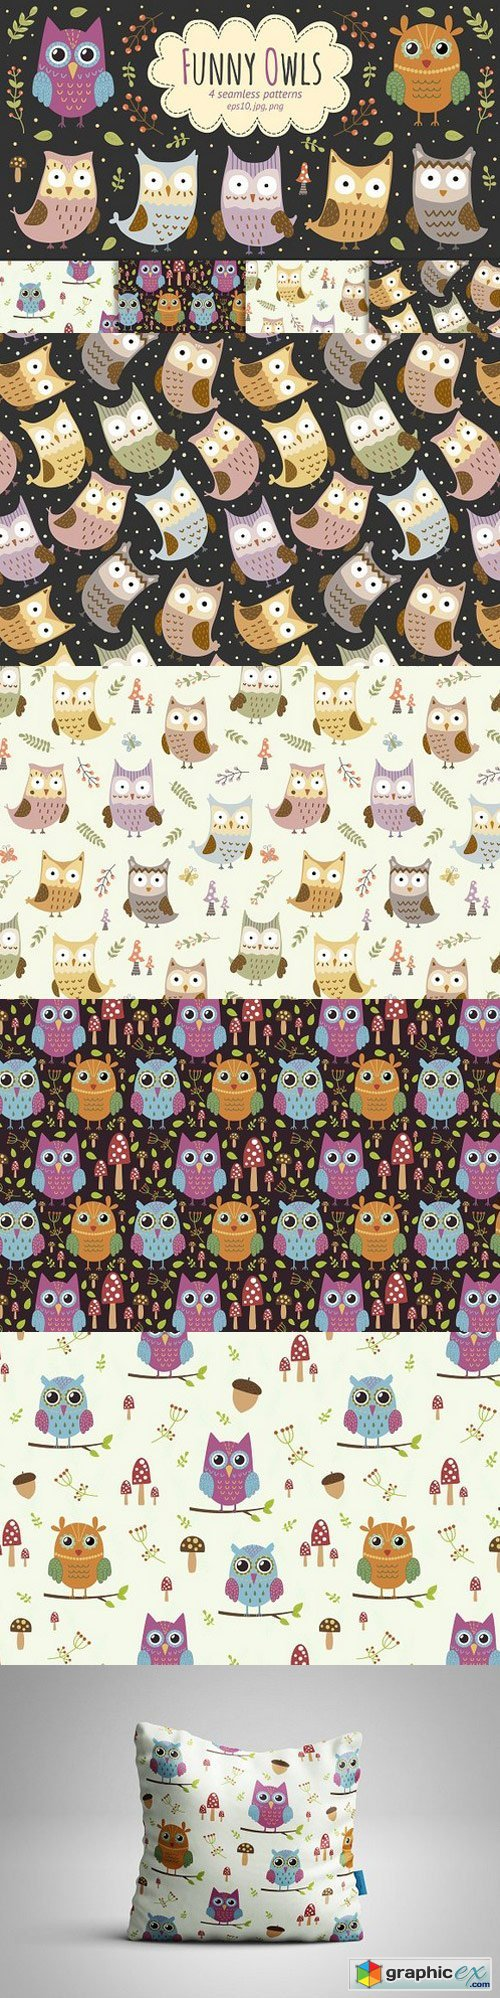 Funny Owls: 4 seamless patterns